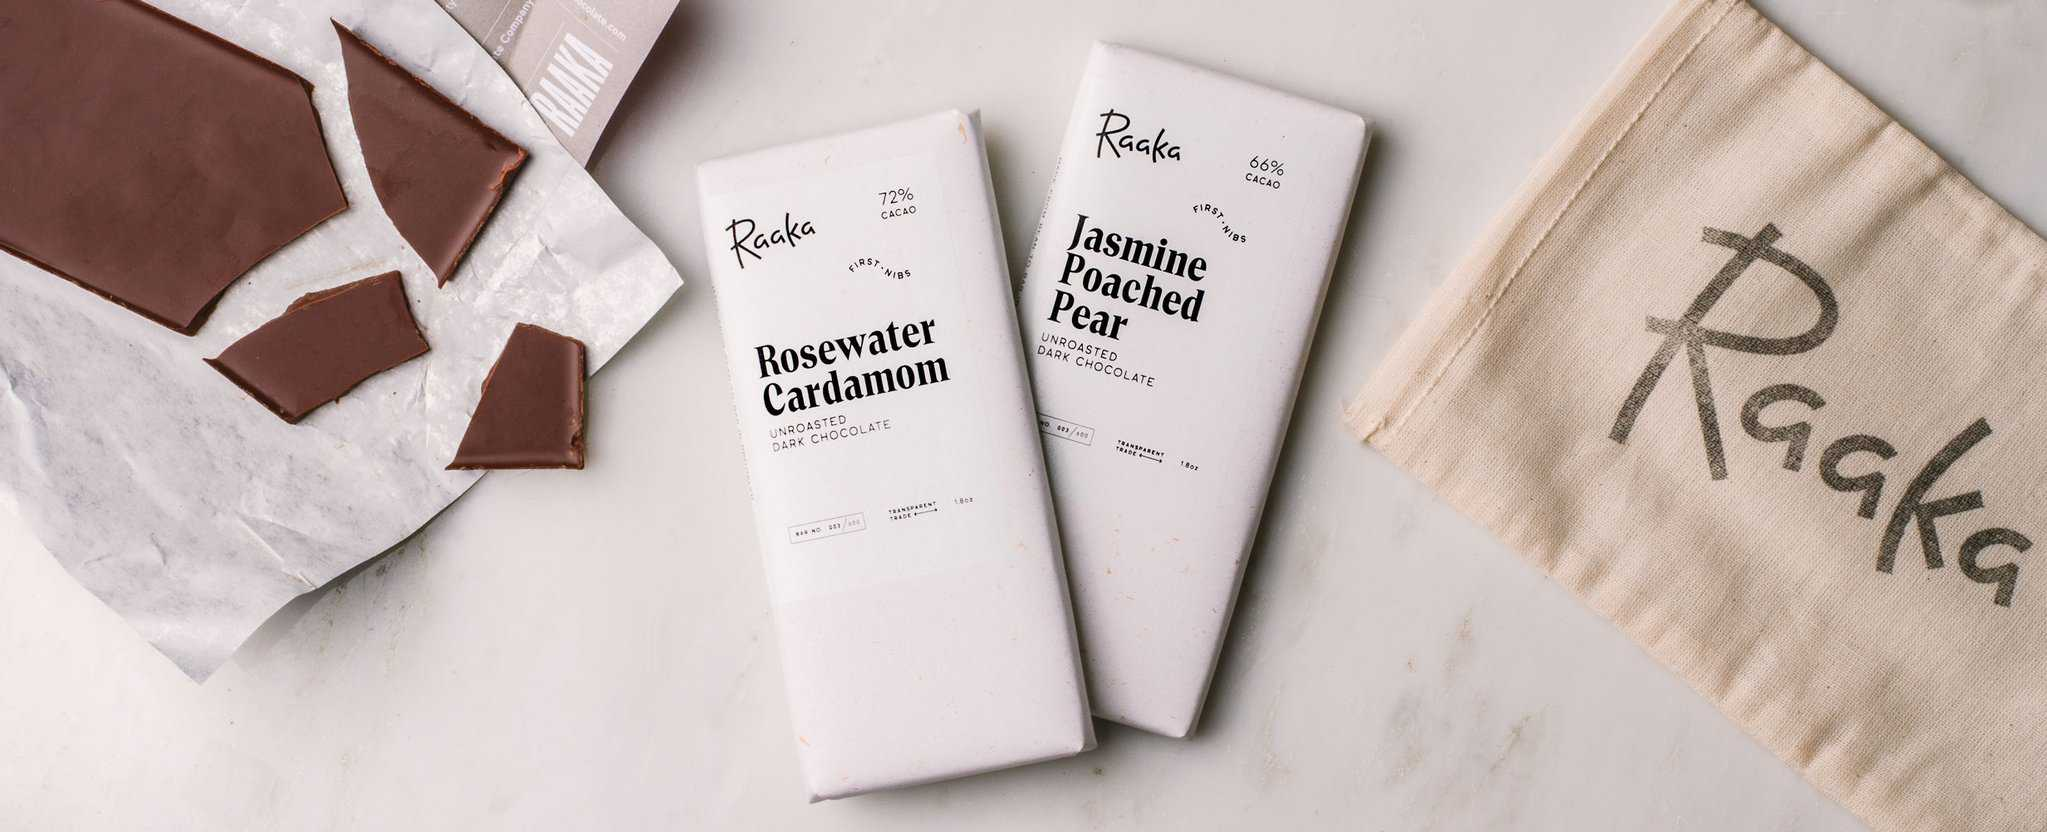 New Box Alert: First Nibs Monthly Chocolate Subscription from Raaka Chocolate